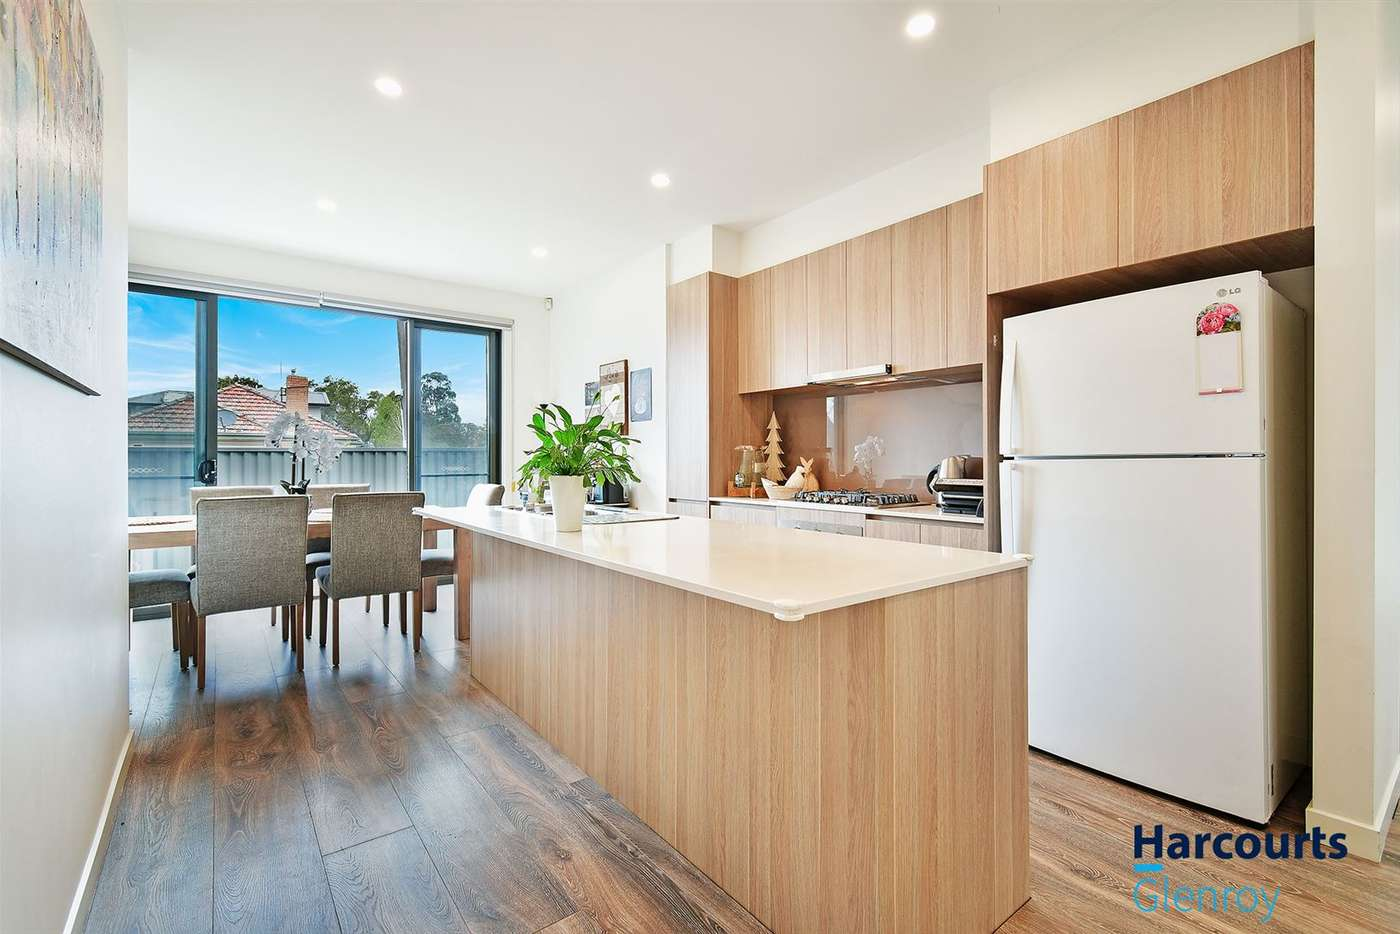 Fifth view of Homely townhouse listing, 44 Morley Street, Glenroy VIC 3046